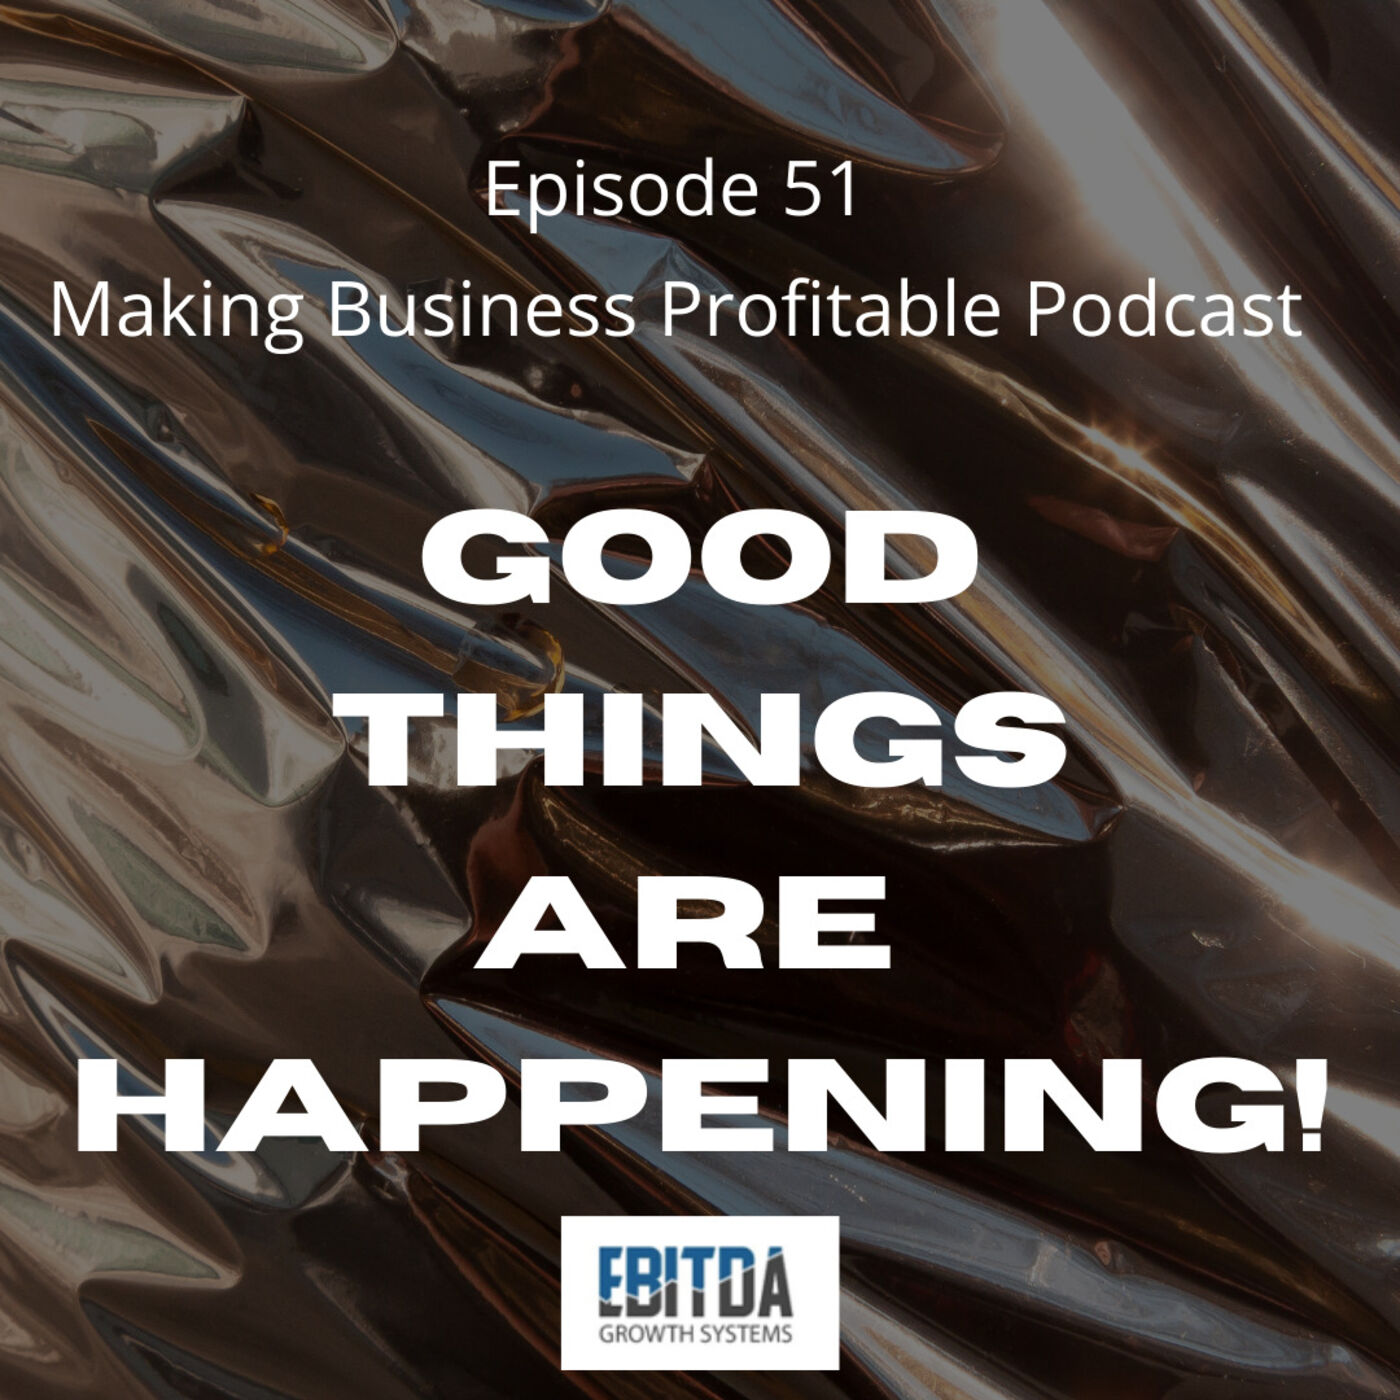 Episode 51-  Lots of Good to focus on